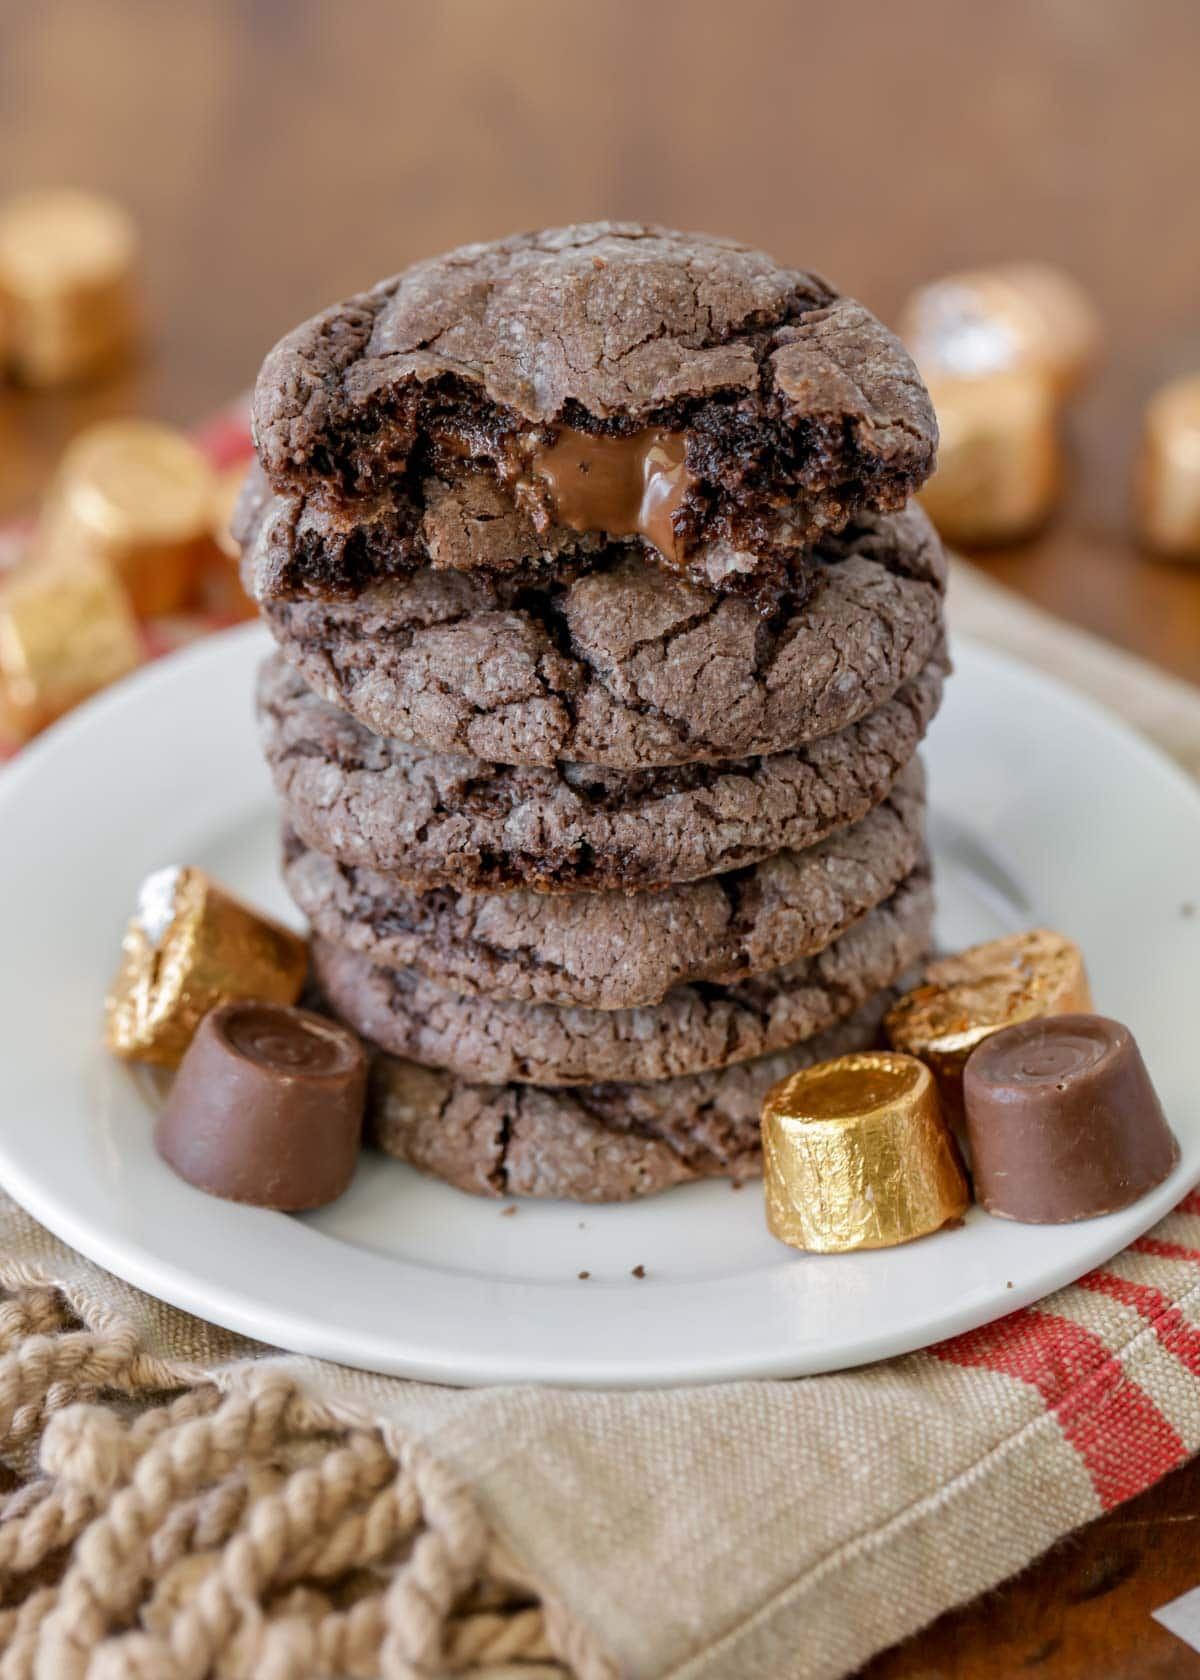 Stack of chocolate Rolo cookies on a white plate